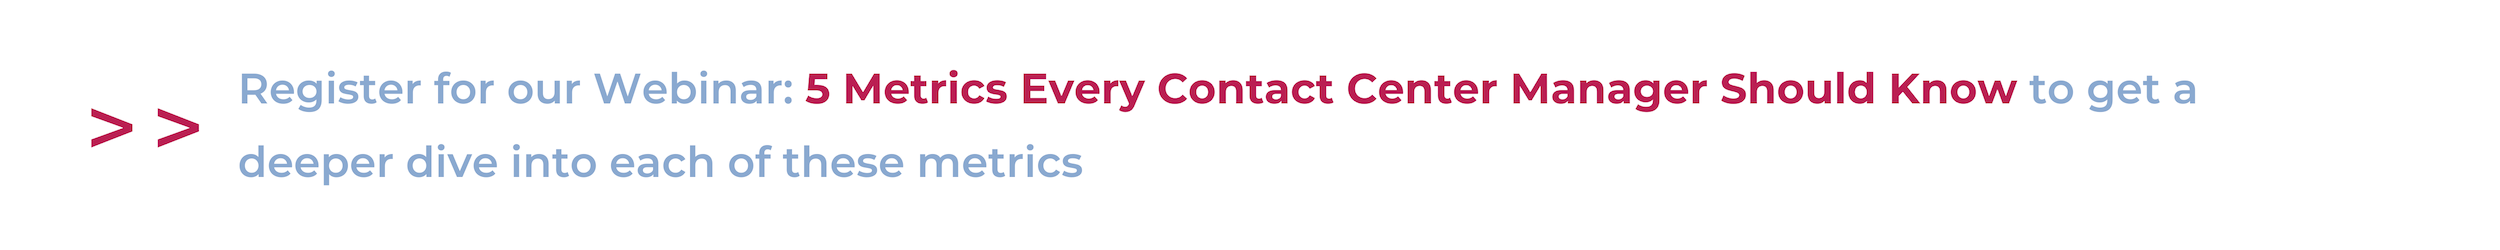 Webinar: 5 metrics every contact center manager should know